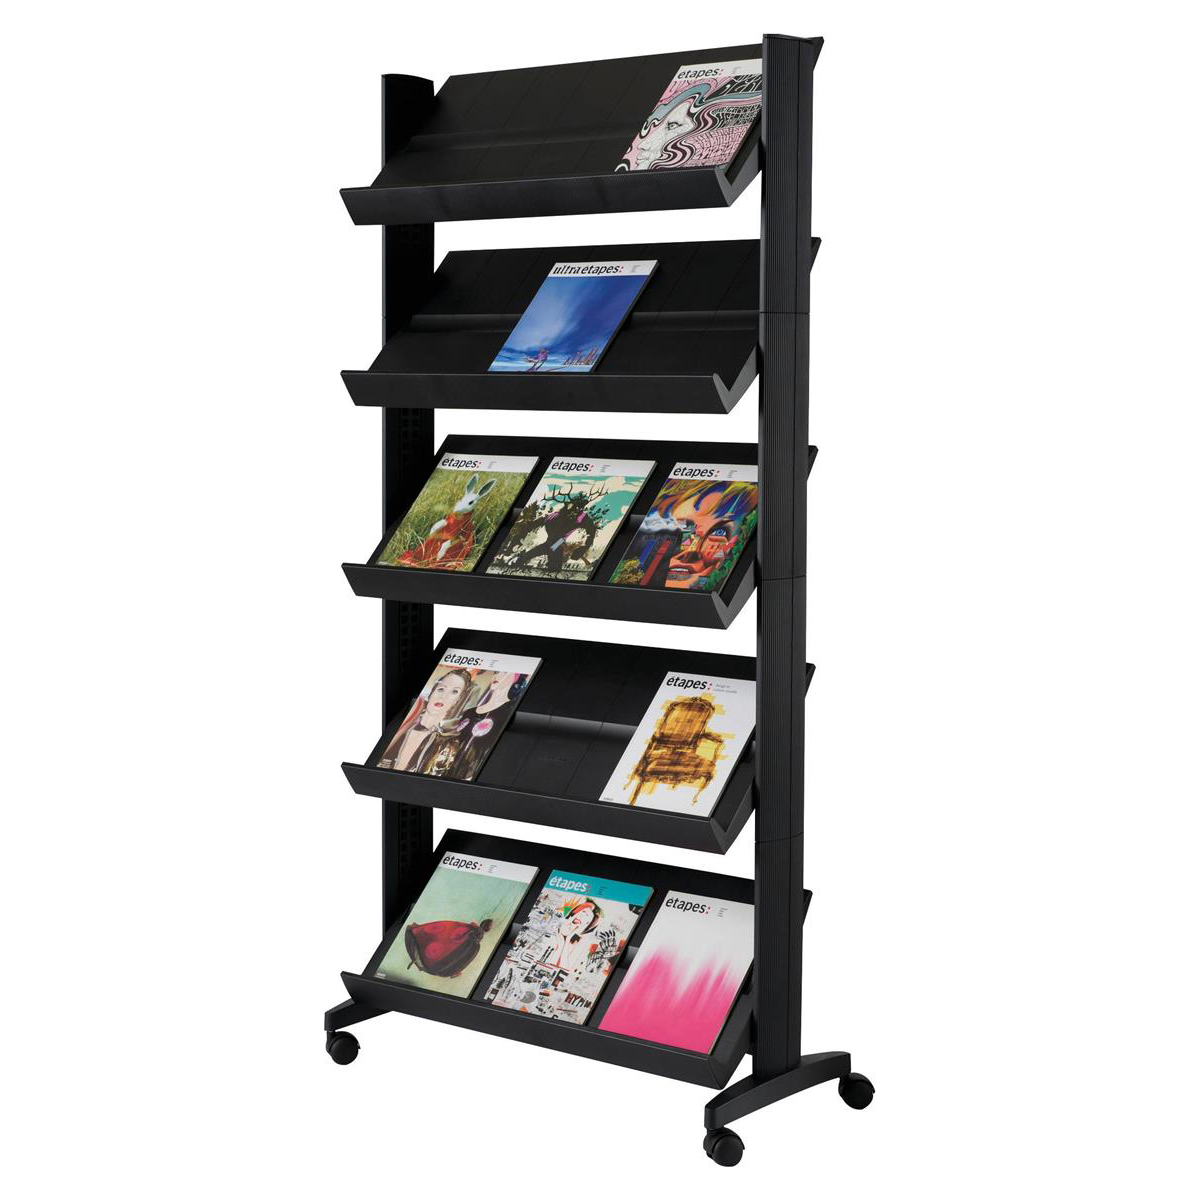 Fast Paper Literature Display Mobile Single Sided 5 Shelves 35mm Lip Black Ref 255N.01